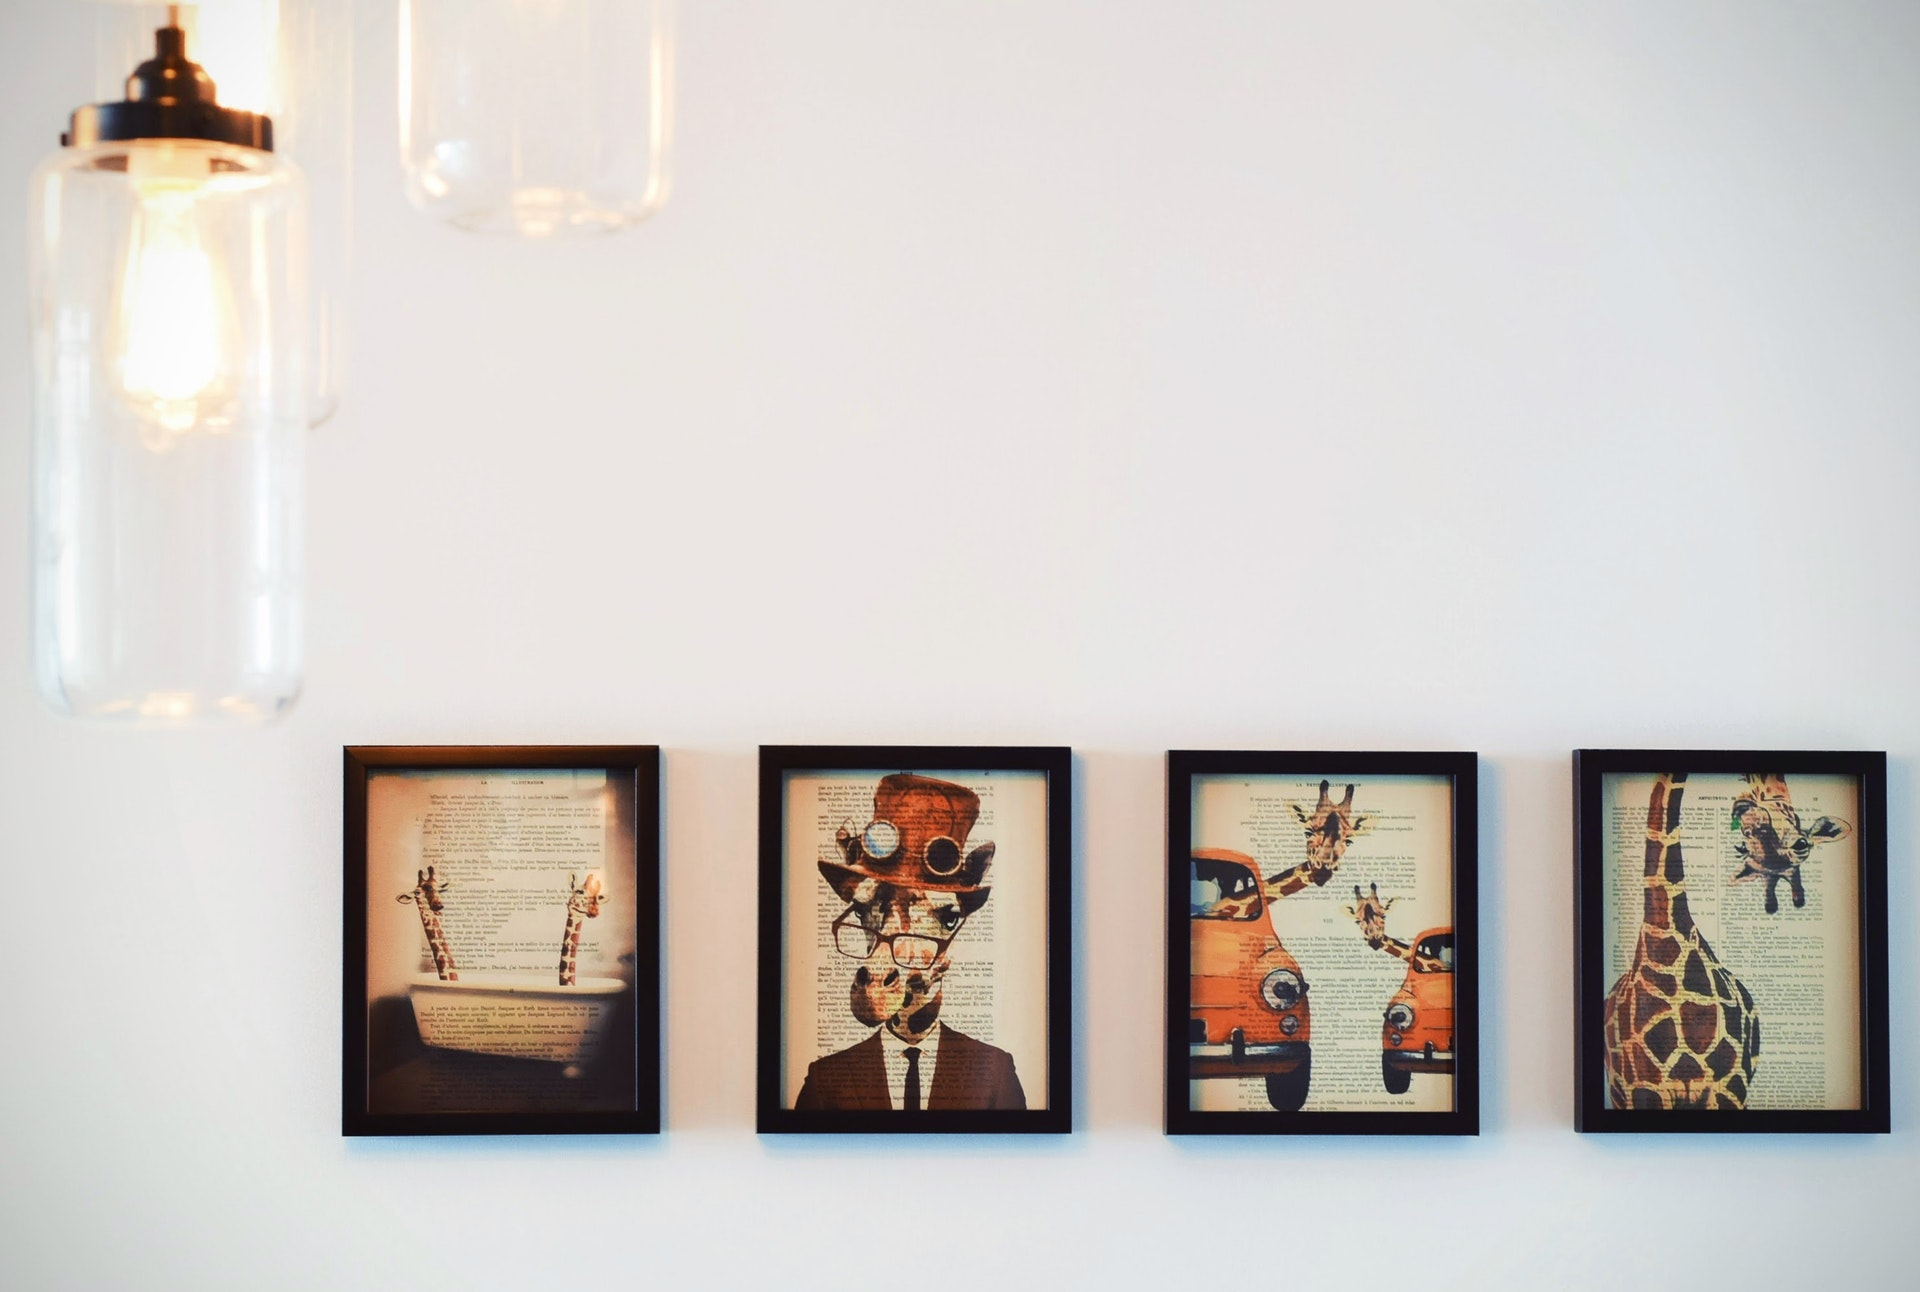 Buy Large Picture Frames Unlike Any Other at J. Devlin Glass Art